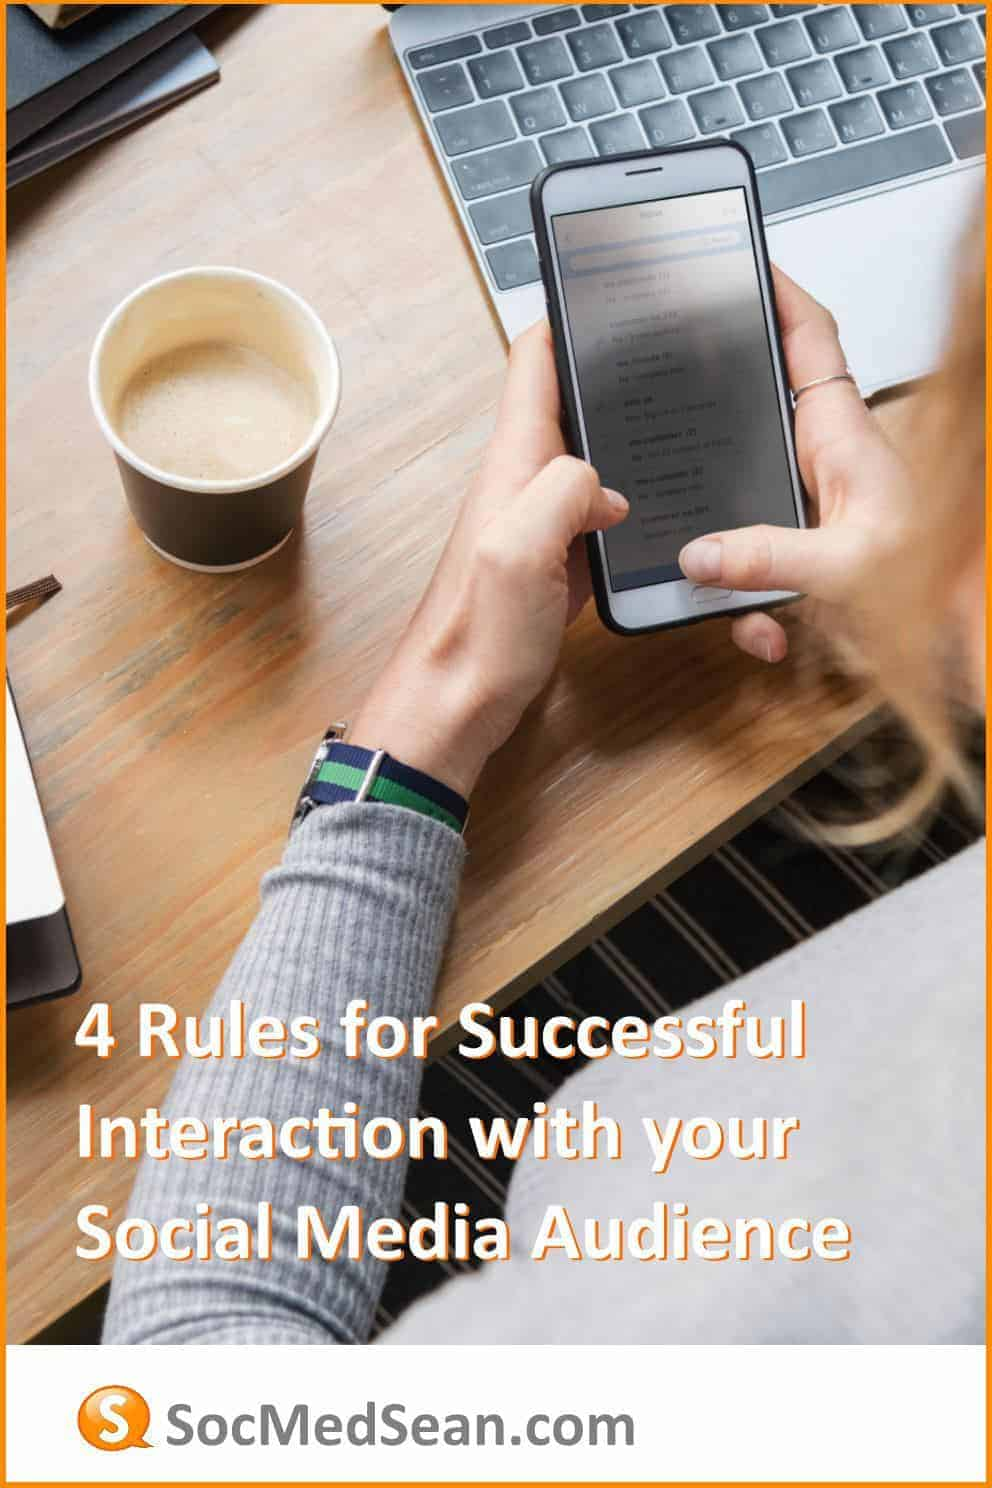 Four important guidelines for any company seeking to successfully engage with their social media audience